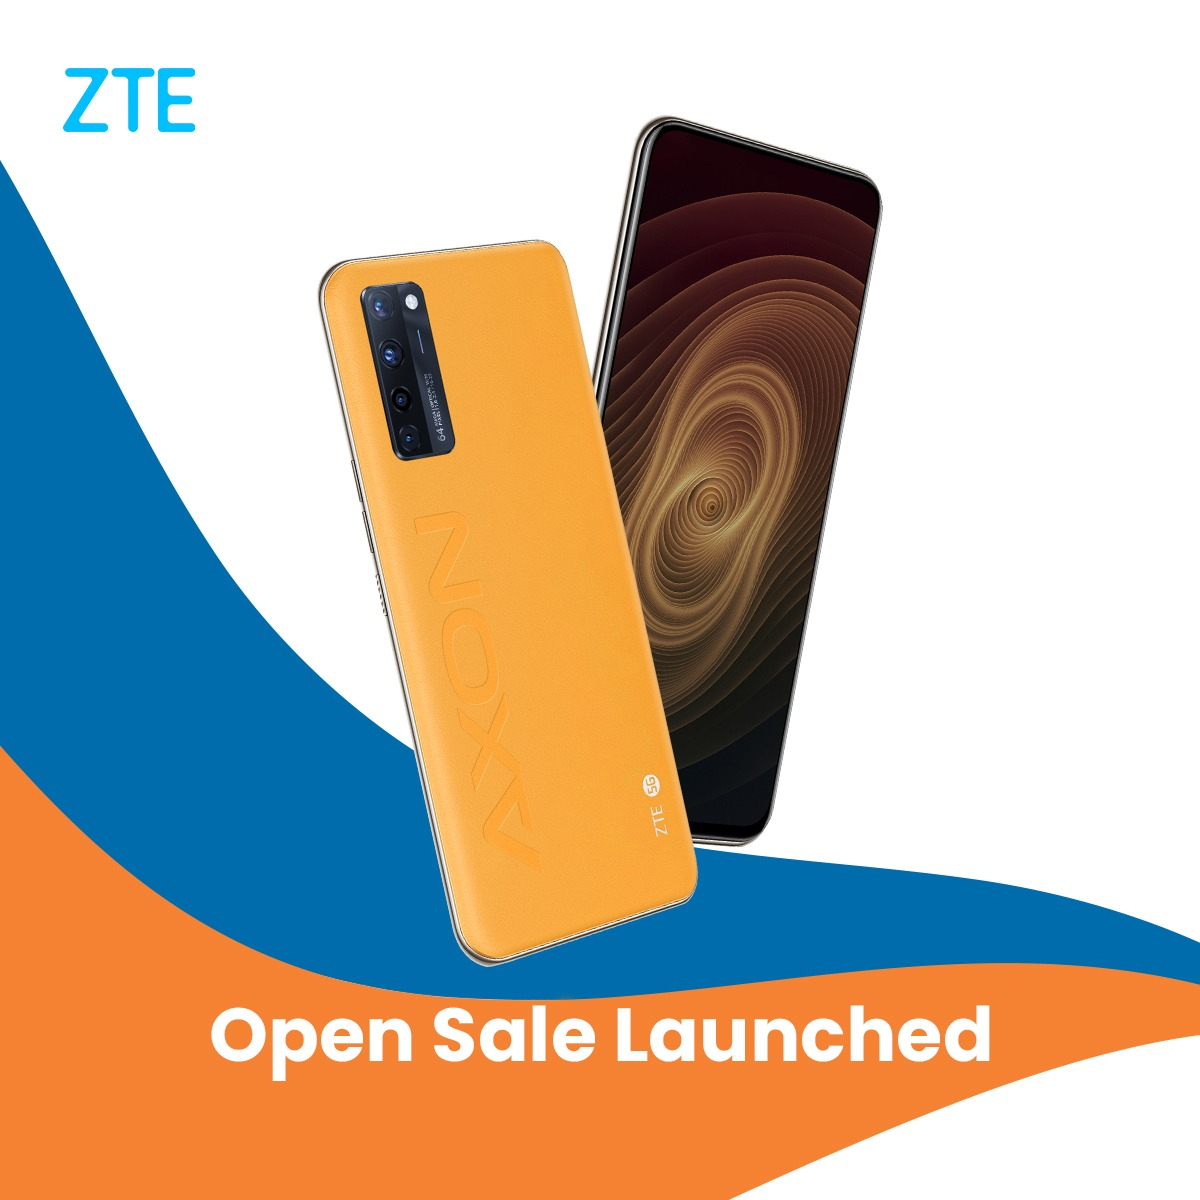 Open sales for the ZTE Axon 20 5G Sunrise Yellow Edition are now officially launched. Try out a piece of the future by ordering yours today: https://t.co/HVZHOFdvFl https://t.co/jK6SHoYPJd